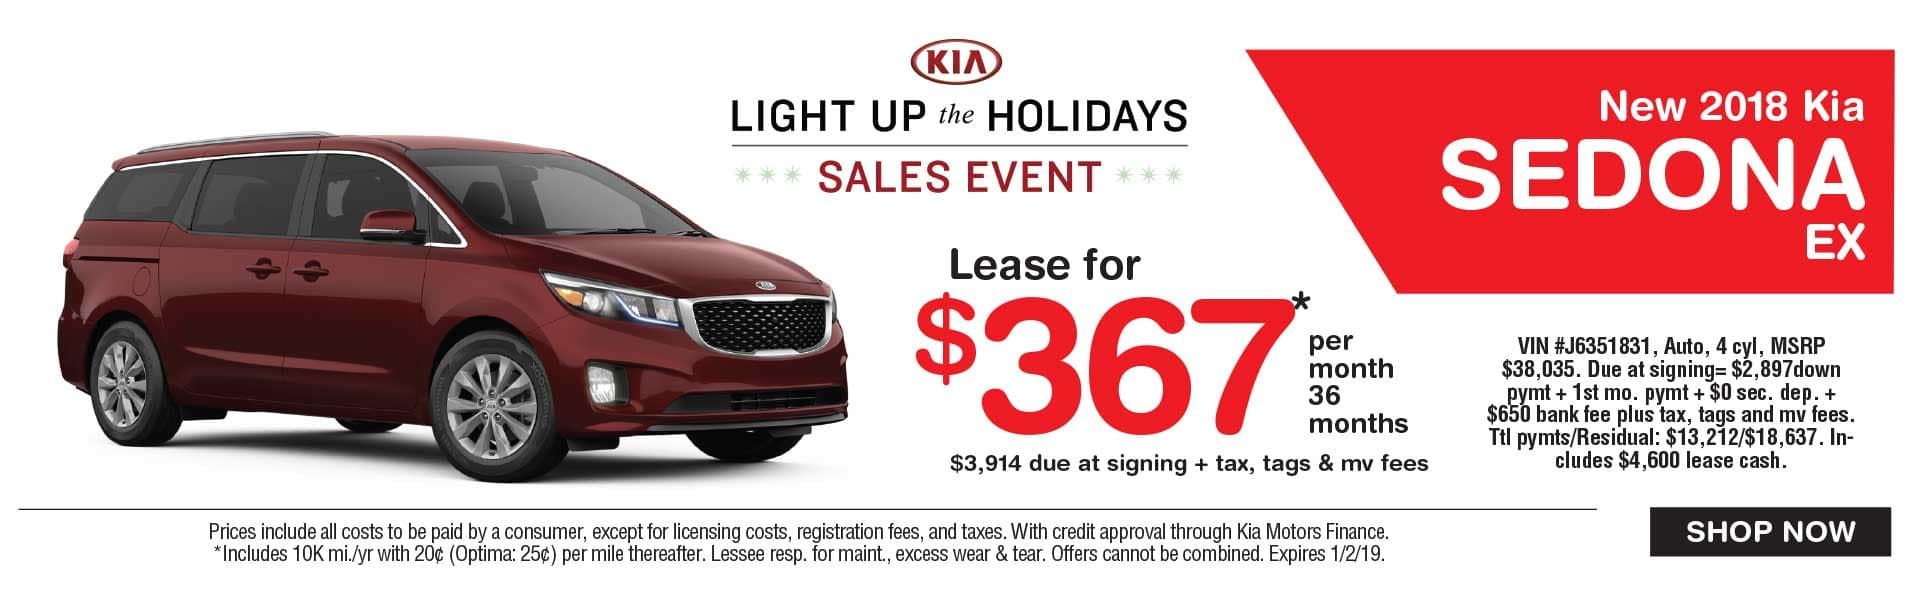 Kia Sedona lease savings at Global Kia